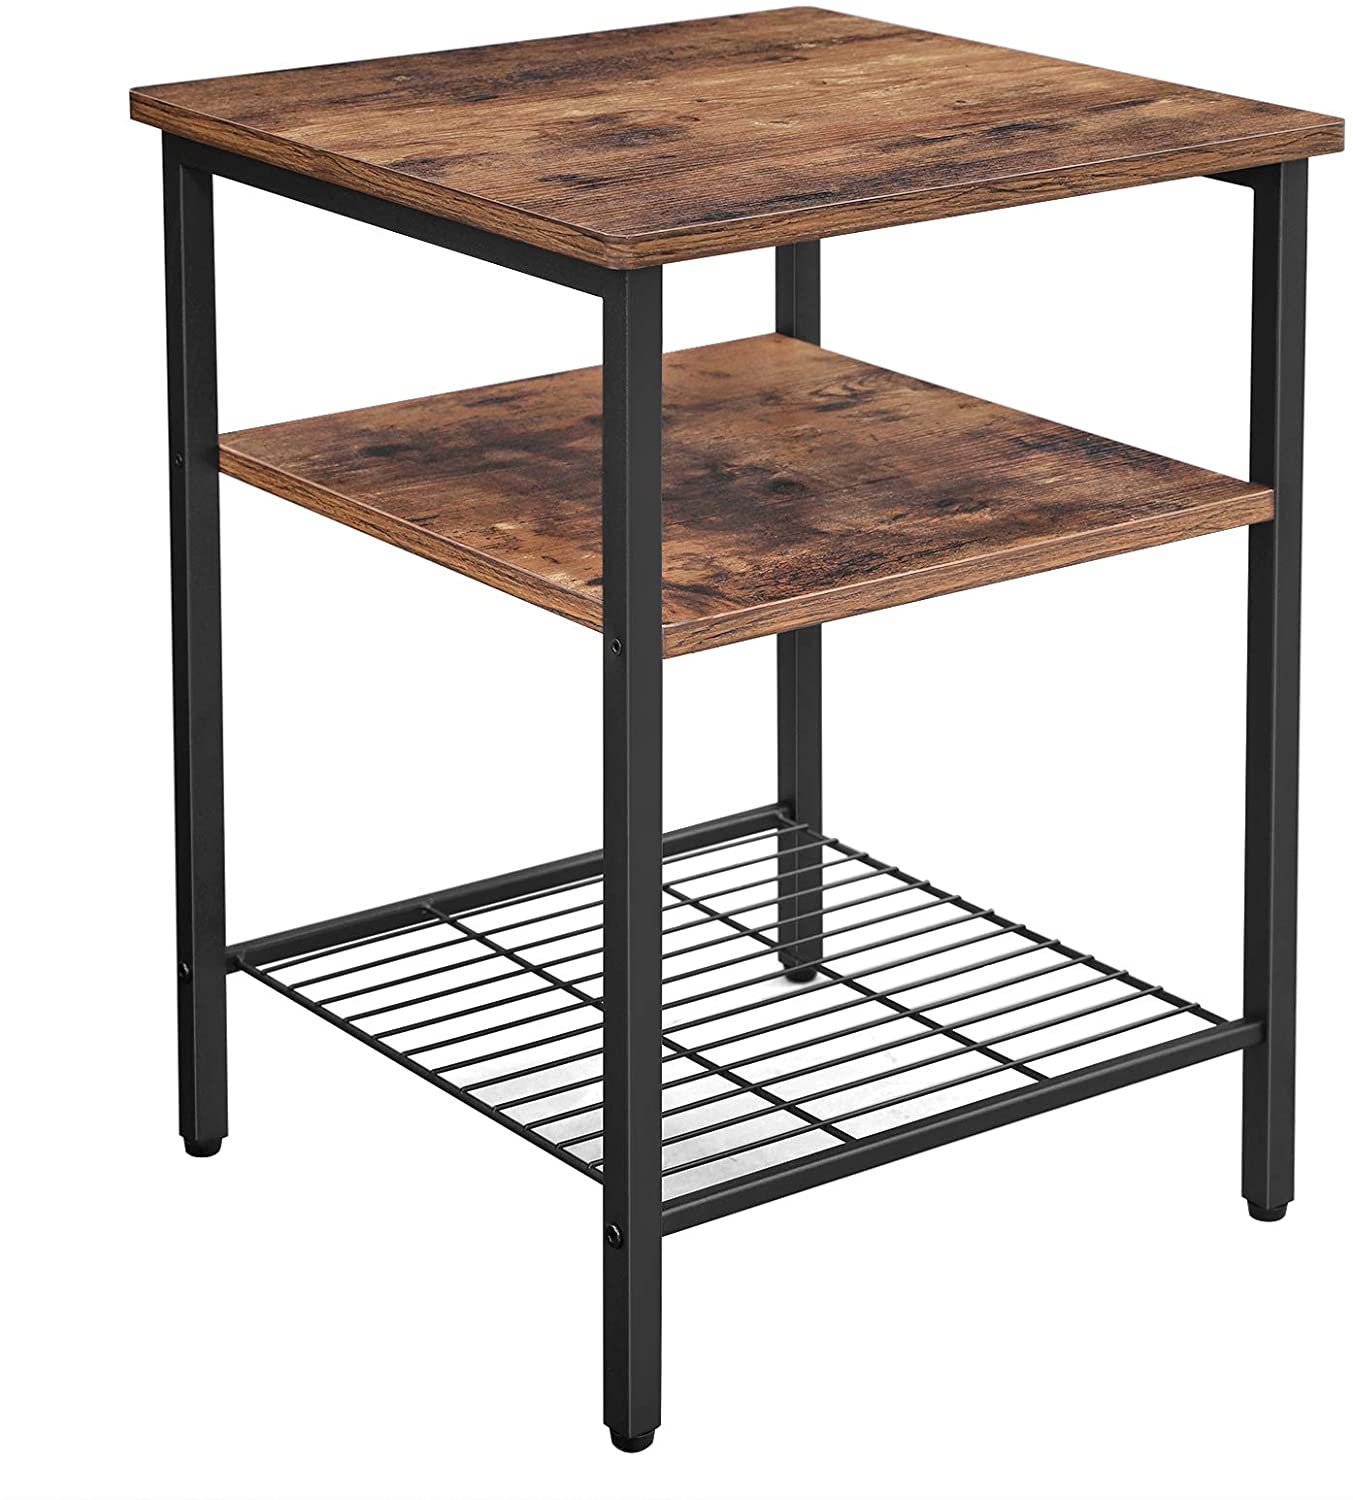 Shop hawkinswoodshop.com for solid wood & metal modern, traditional, contemporary, industrial, custom, rustic, and farmhouse furniture including our Ryan Industrial Farmhouse Nightstand w/ 3 Shelves.  Enjoy free nationwide shipping, help with the fight against hunger in the US, and support a family owned and operated business that helps puts food on the table for folks in rural Northern California.